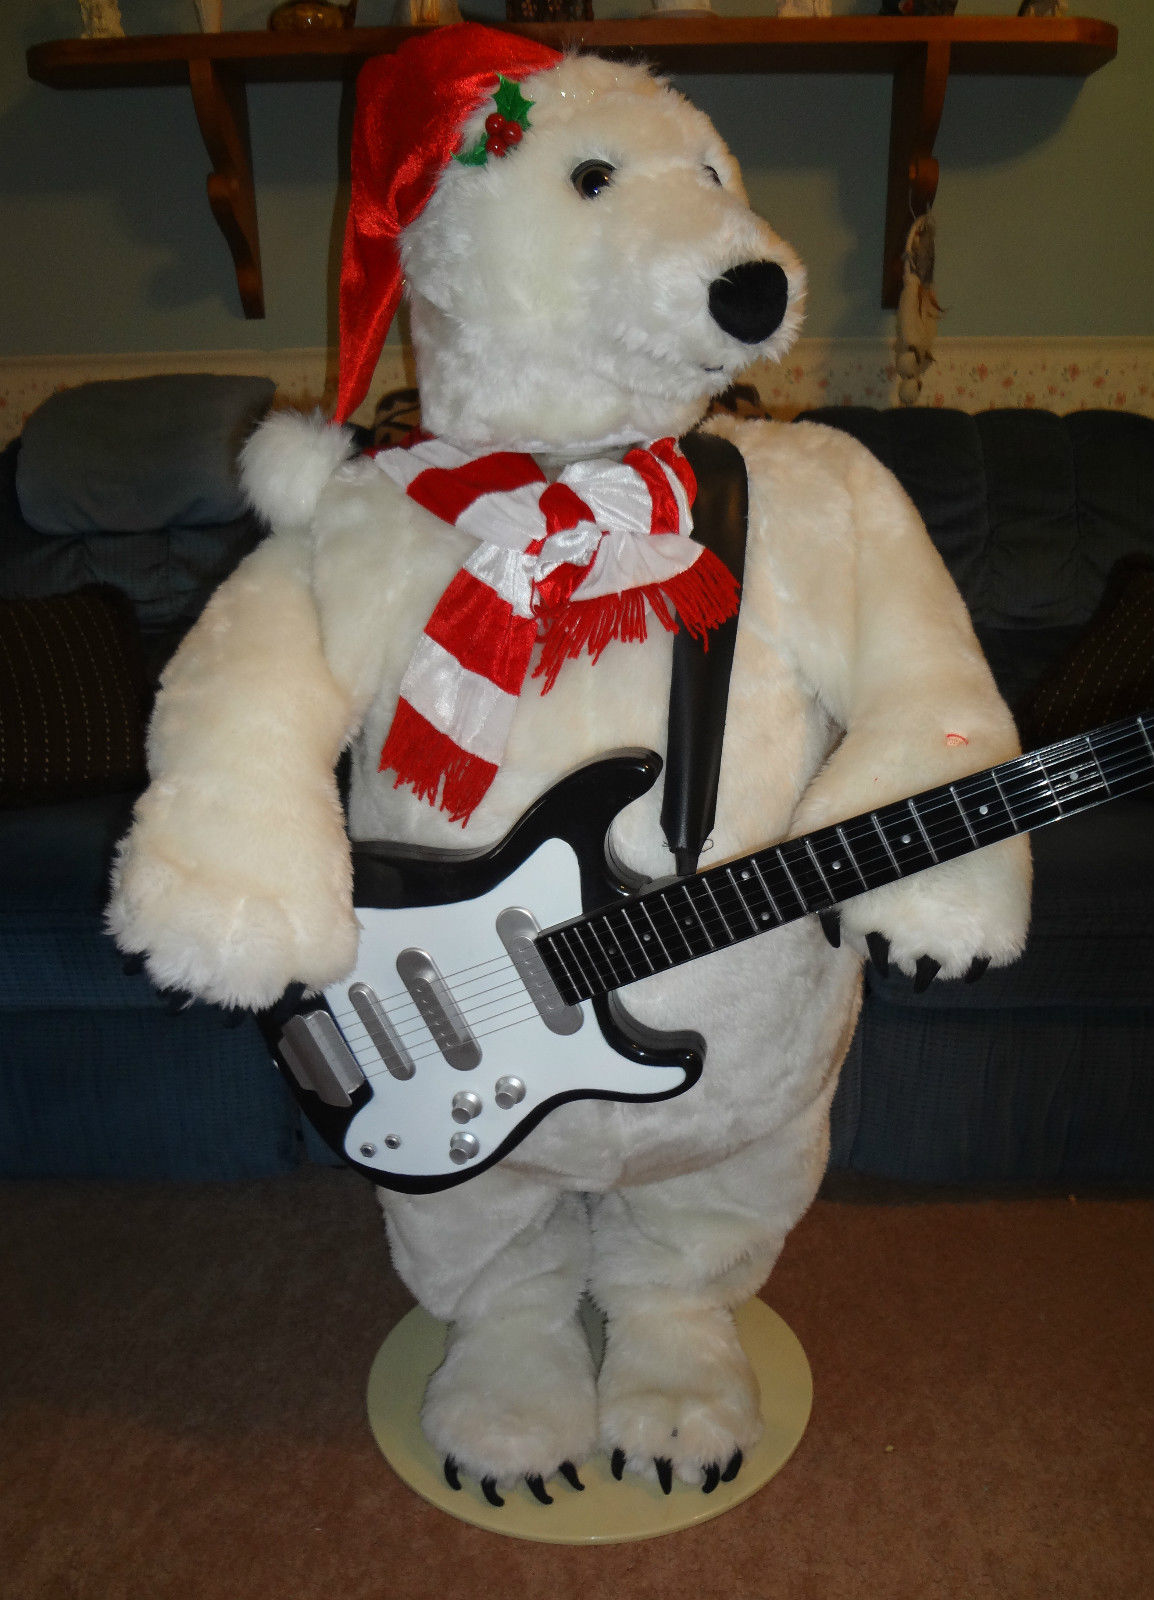 animated christmas decoration polar bear playing giutar animatronic